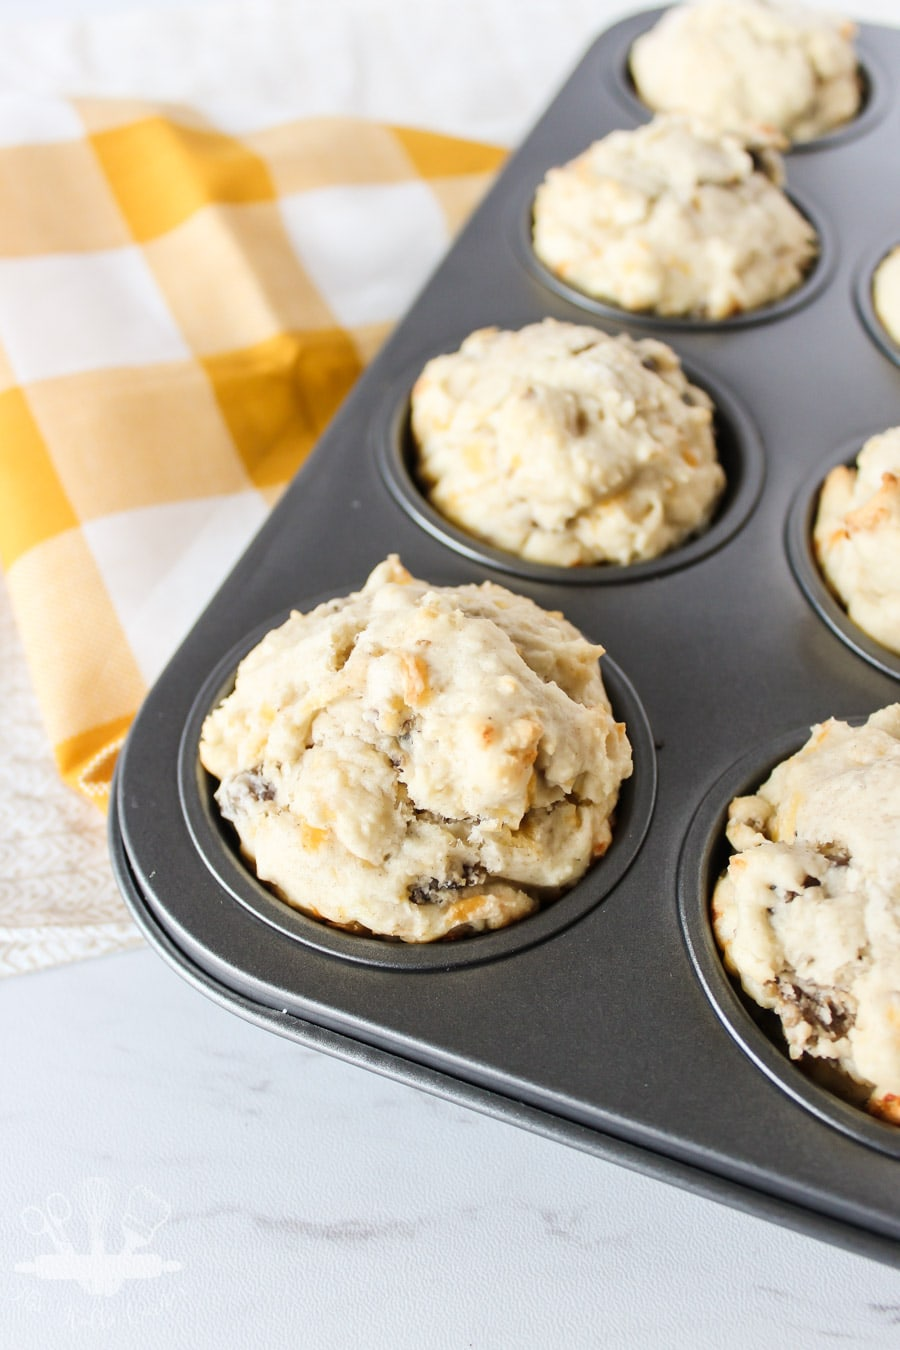 Sausage and Cheese Breakfast Muffins